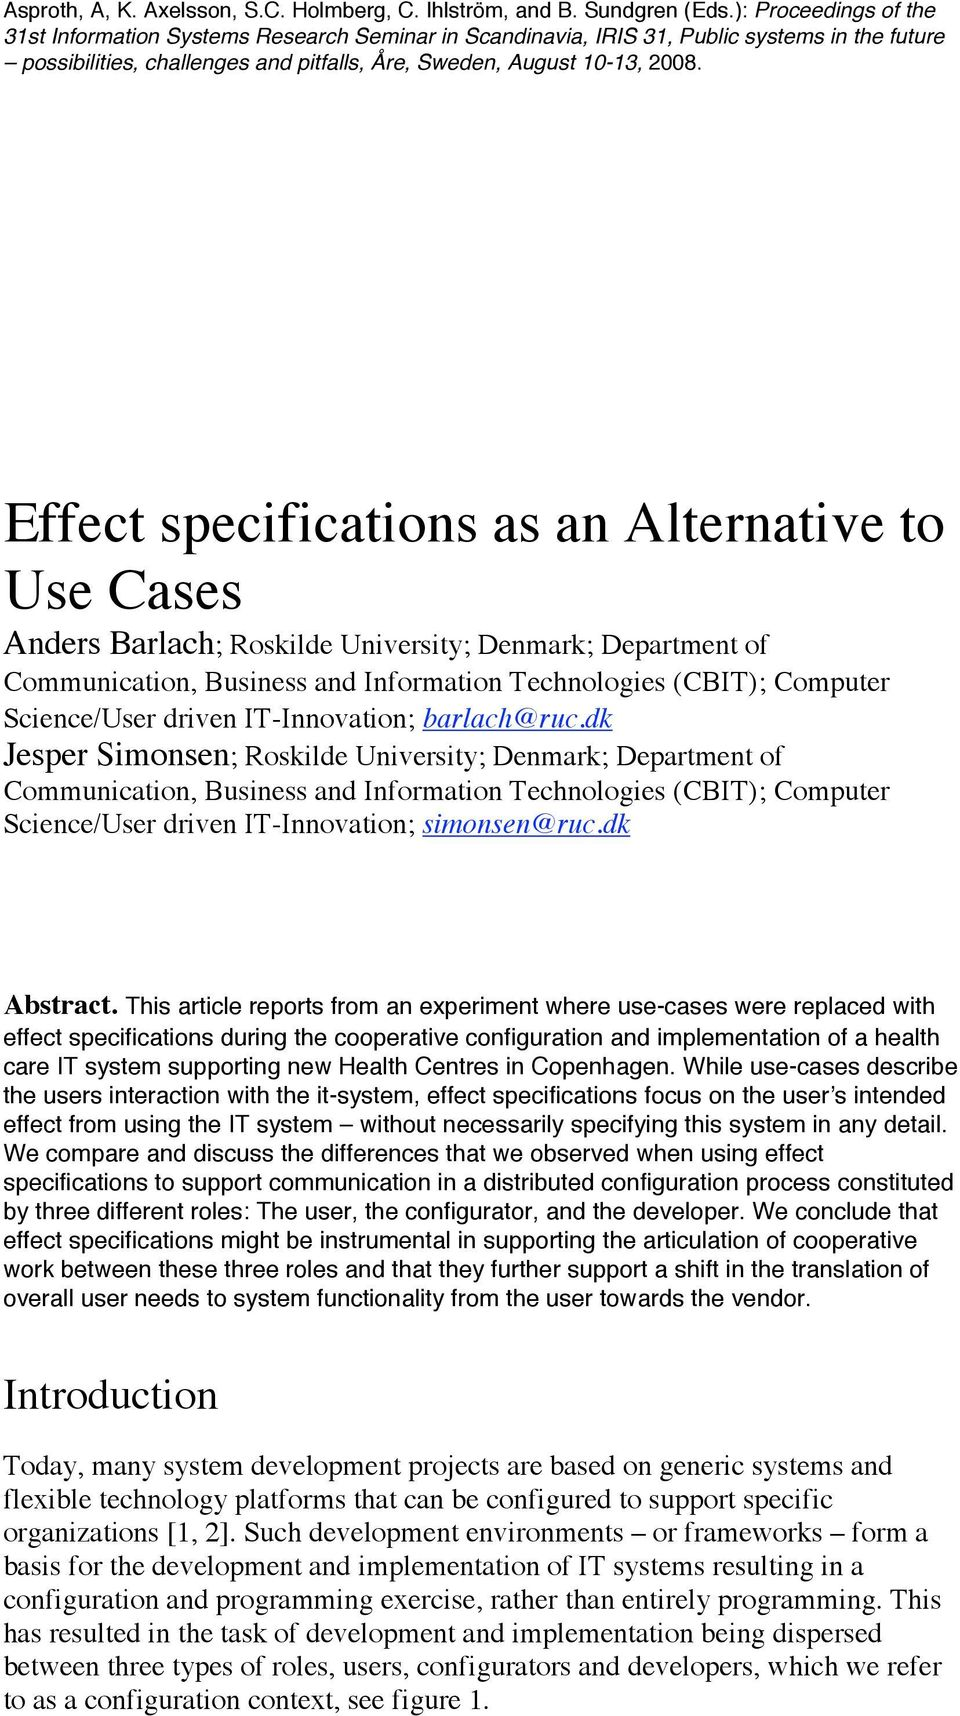 Effect specifications as an Alternative to Use Cases Anders Barlach; Roskilde University; Denmark; Department of Communication, Business and Information Technologies (CBIT); Computer Science/User